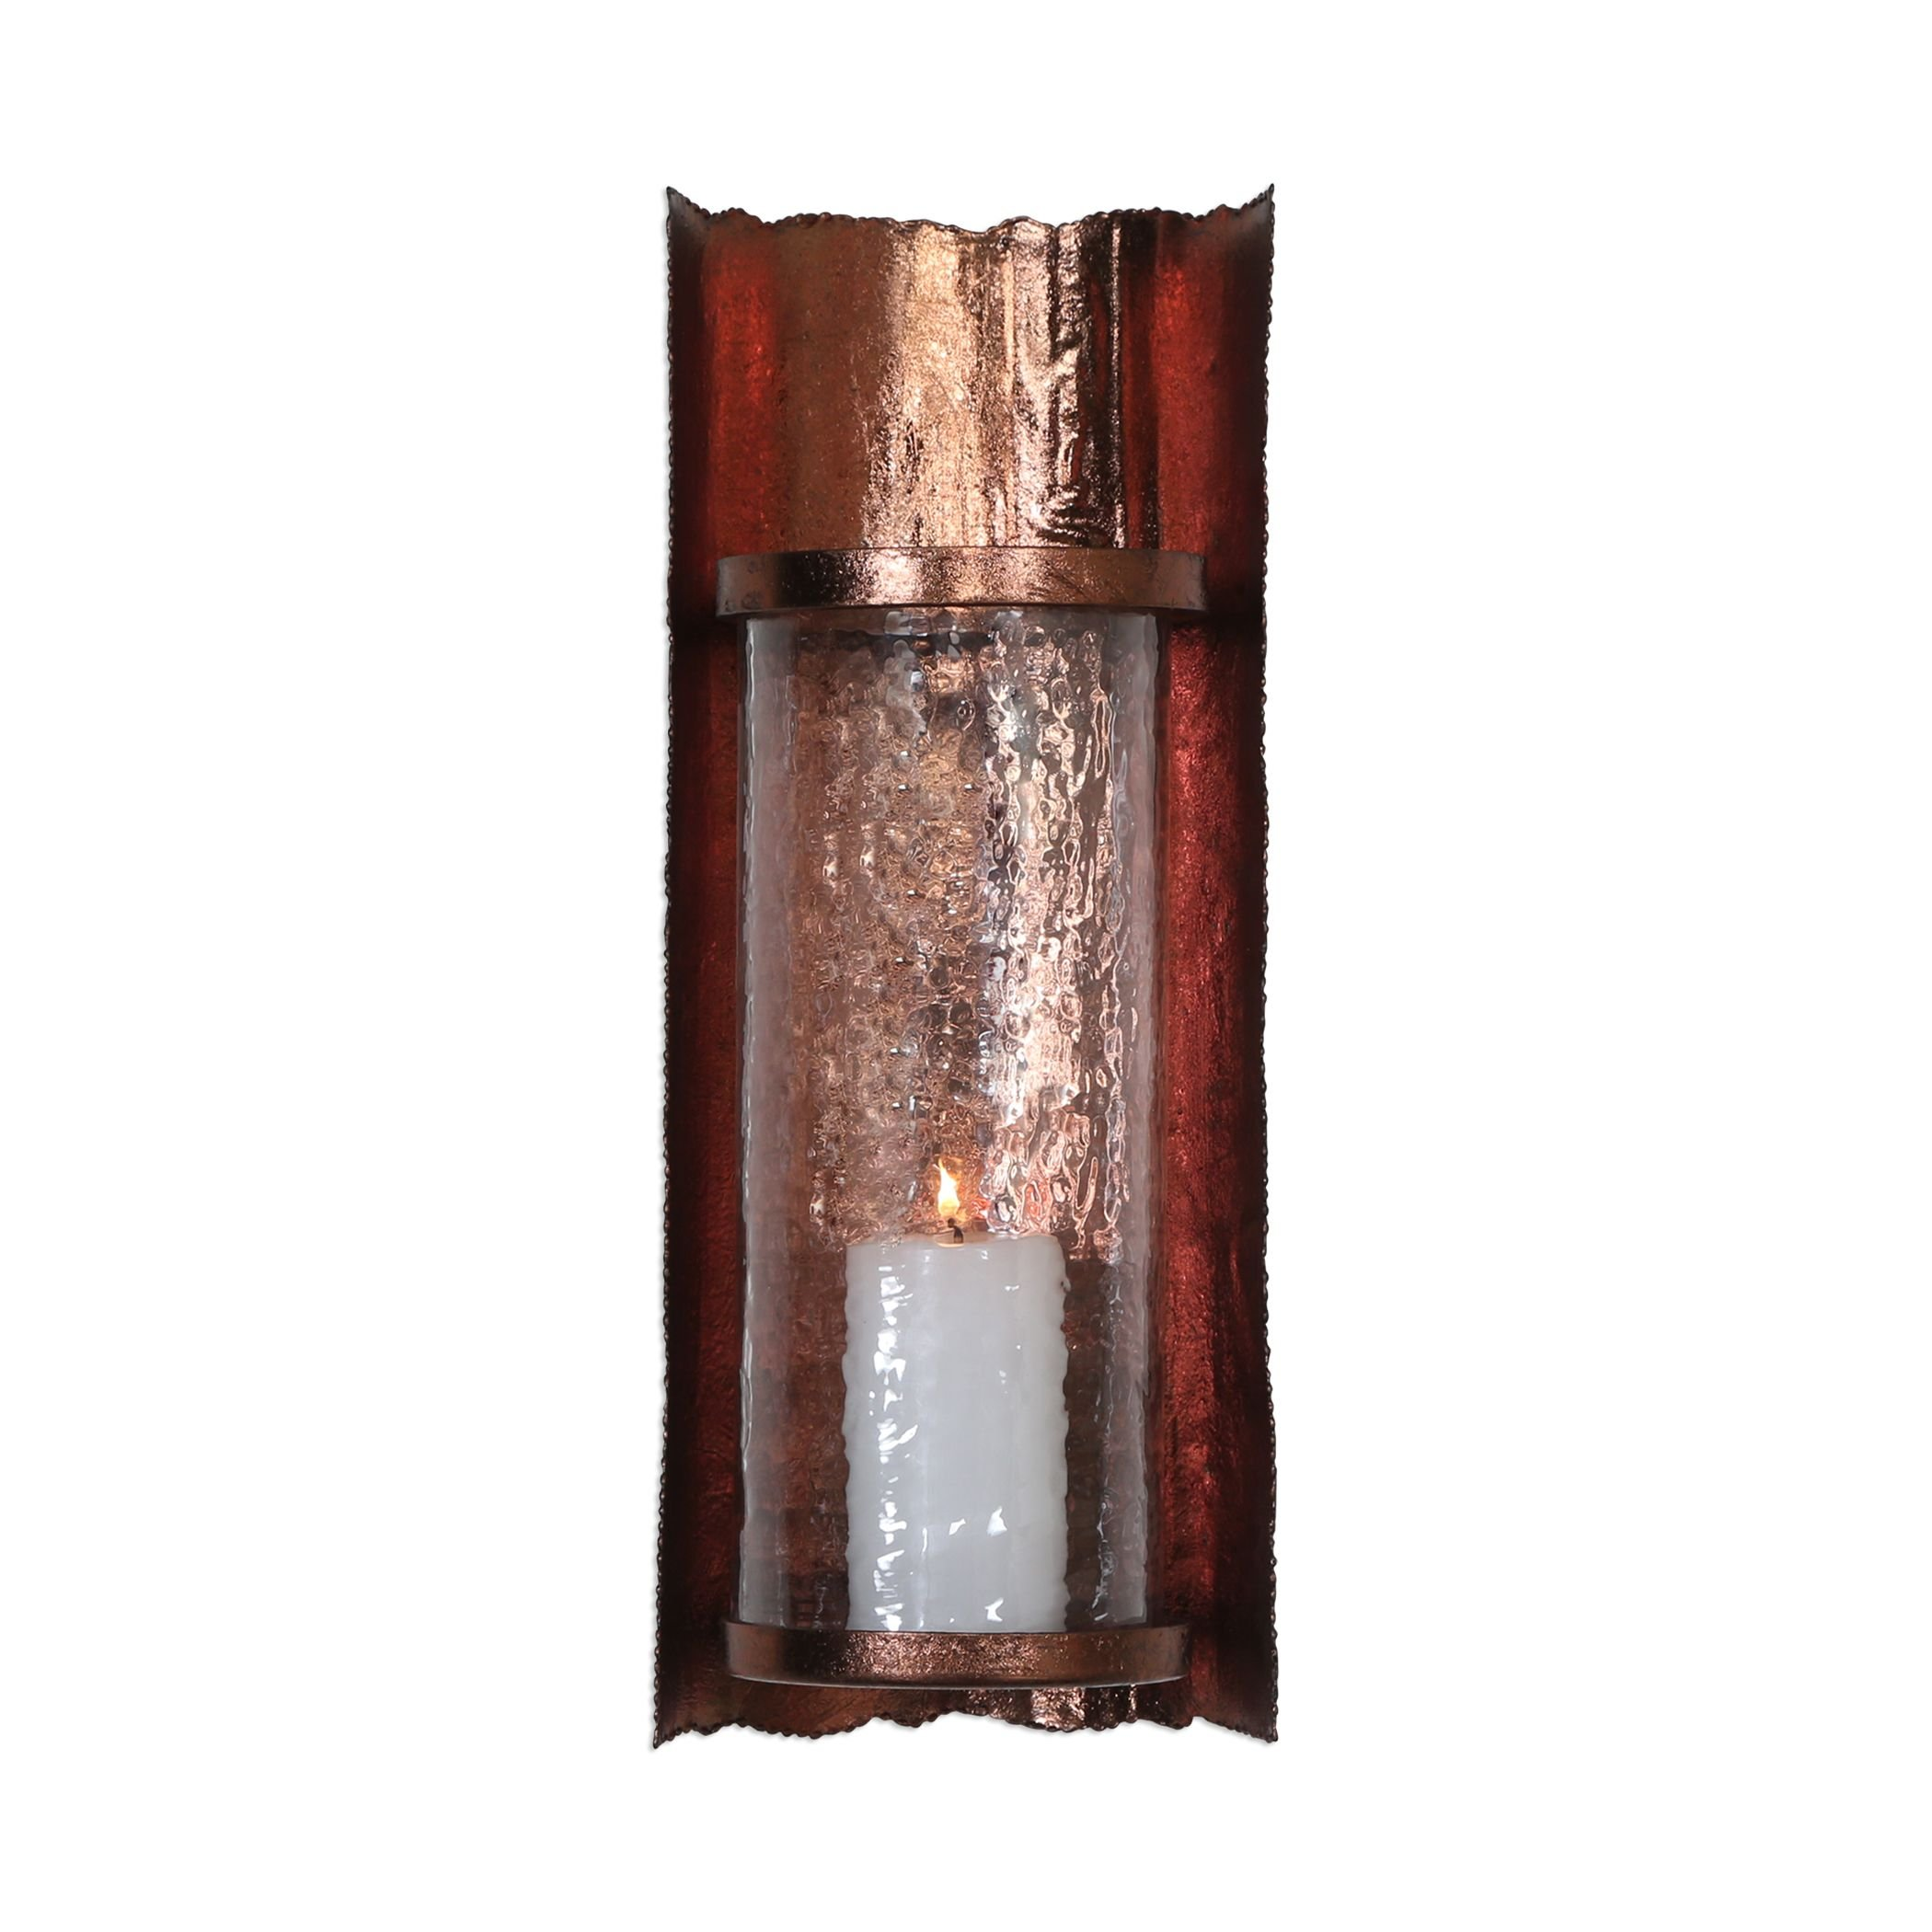 Rustic Vintage Antique Style Wall Candle Sconce   Copper Finish Metal Primitive